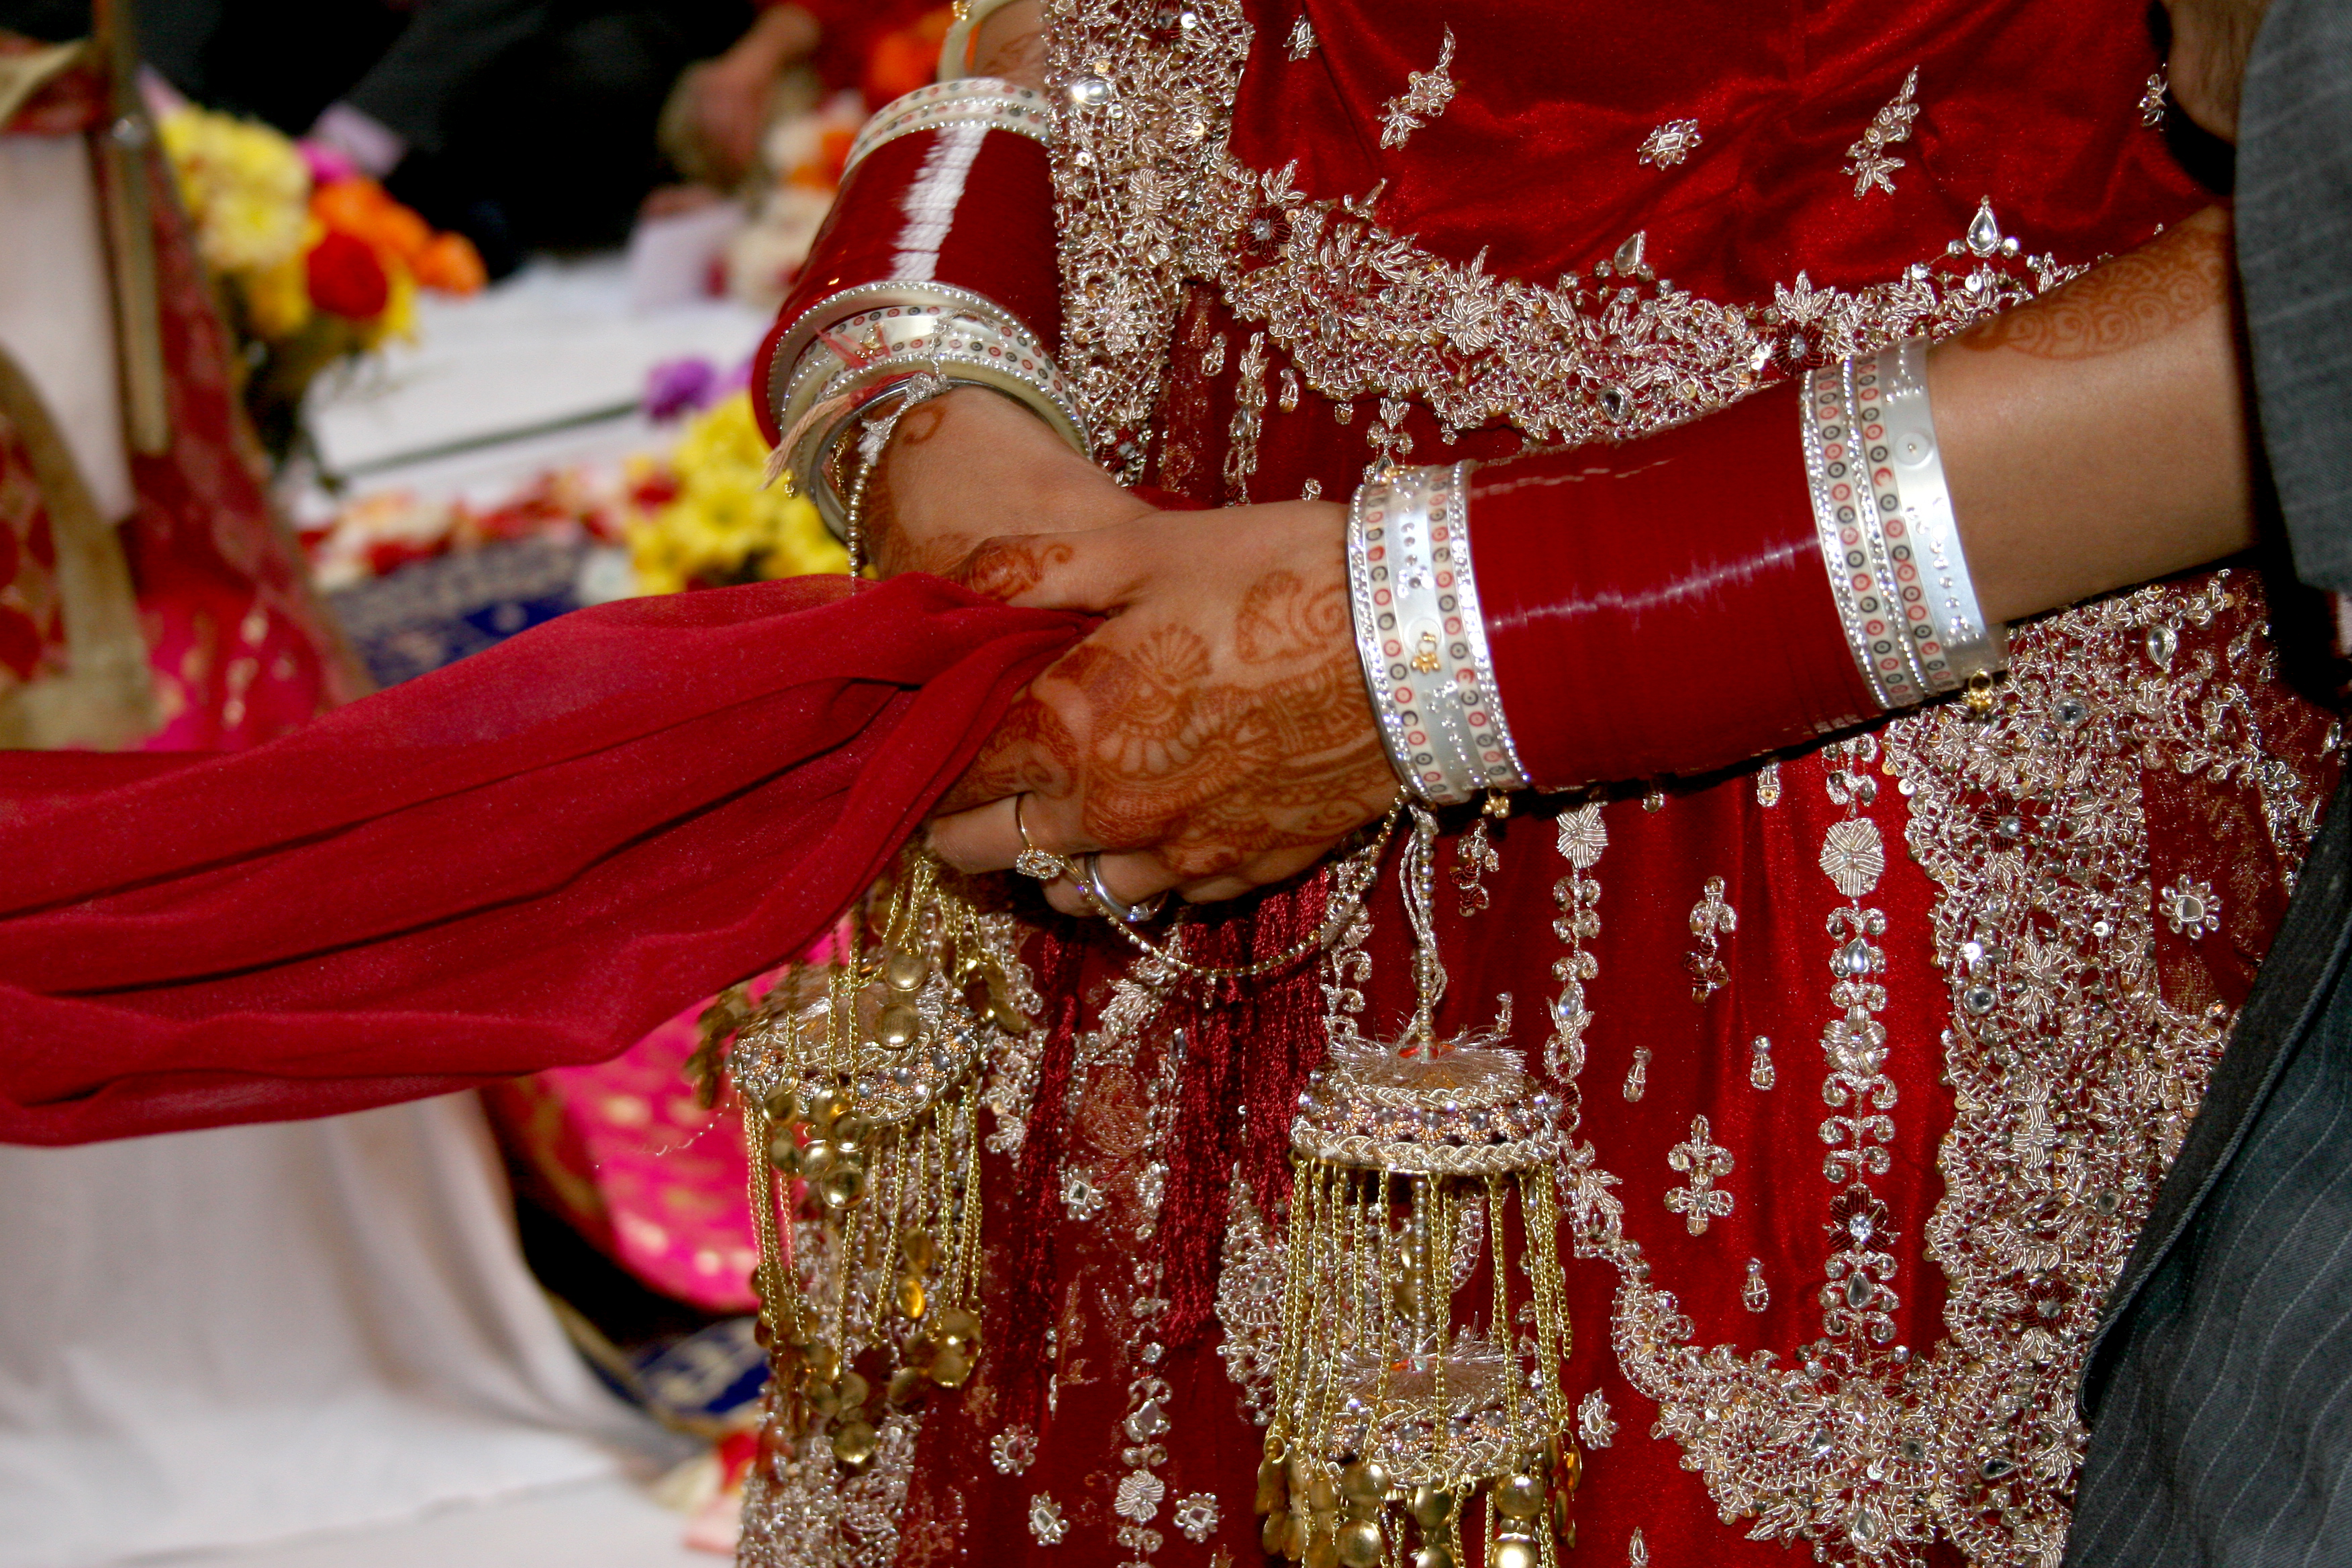 The proposed law will be applicable to NRIs marrying Indian women within or even outside India.